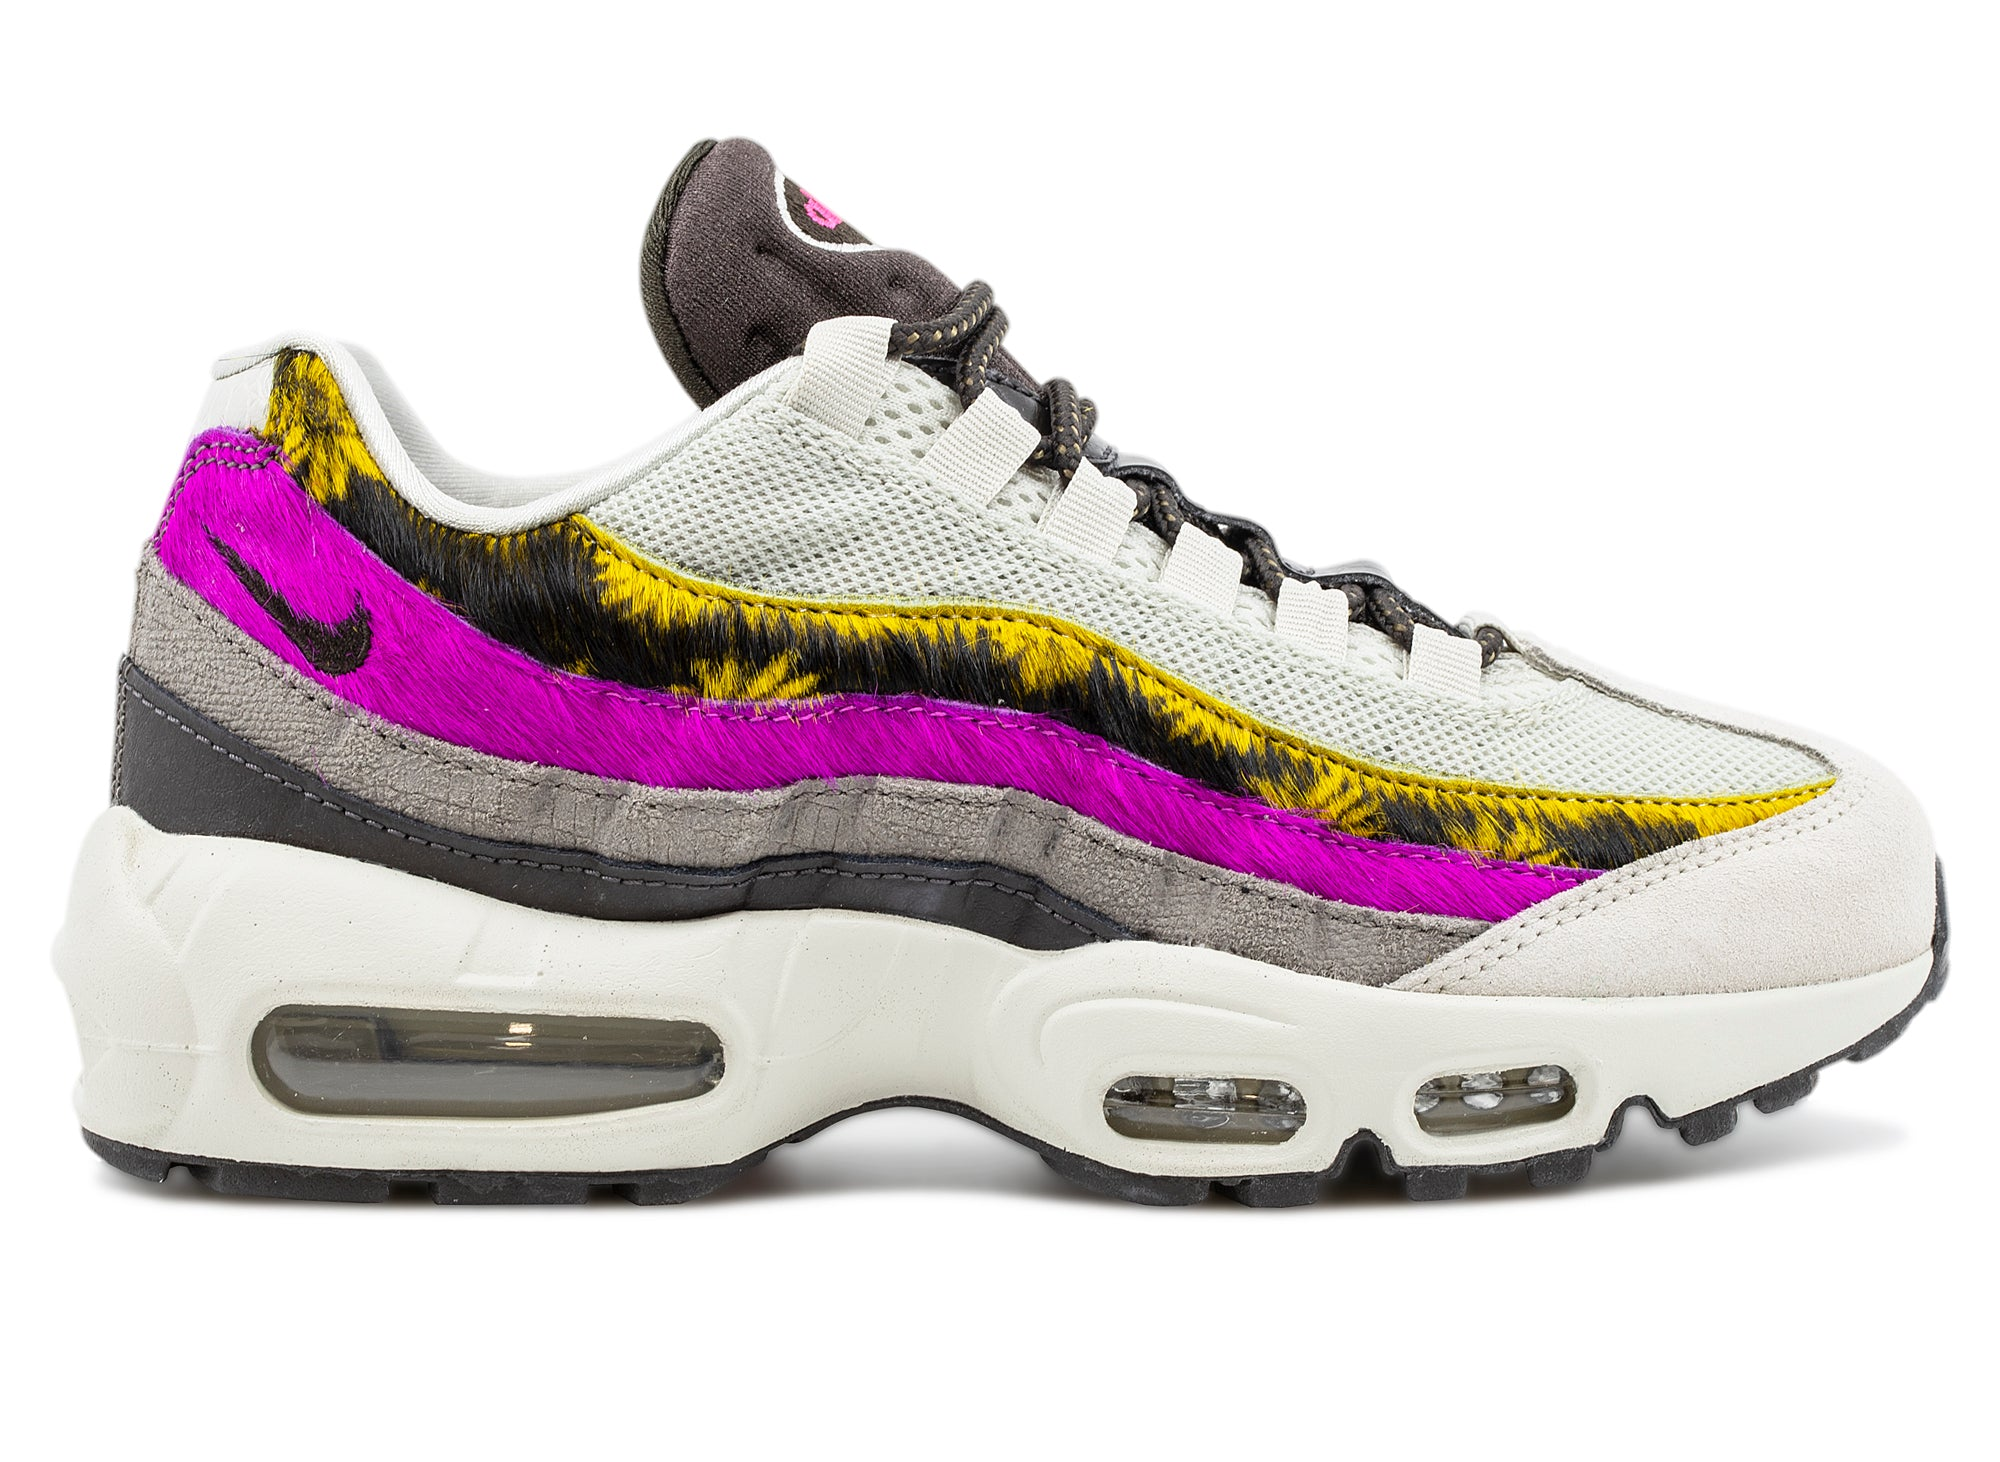 Nike Air Max 95 Premium 'Pony Hair'